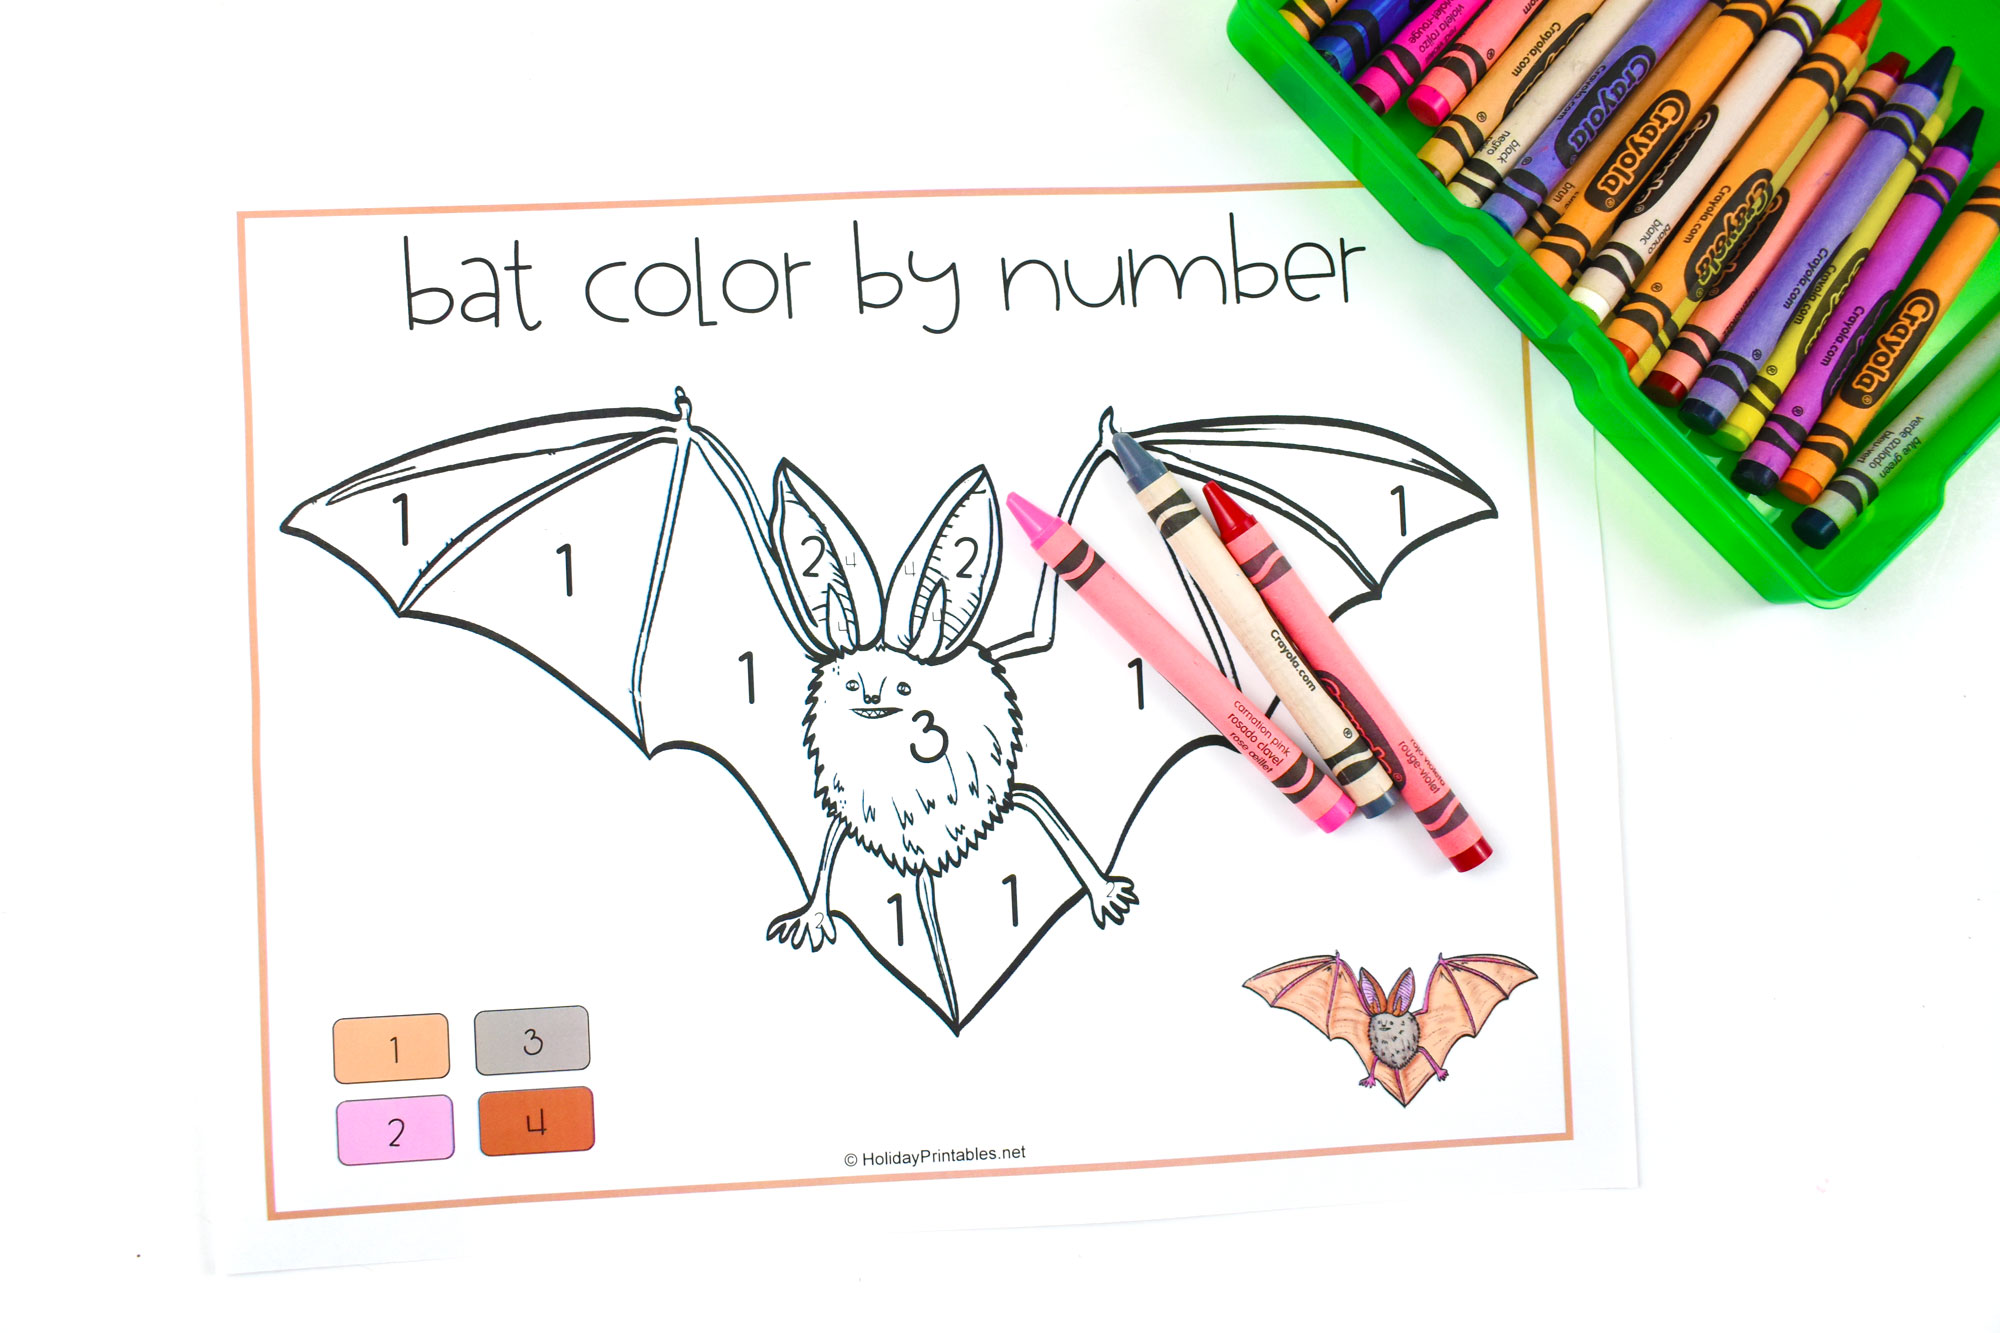 Bat Color by Number | HolidayPrintables.net